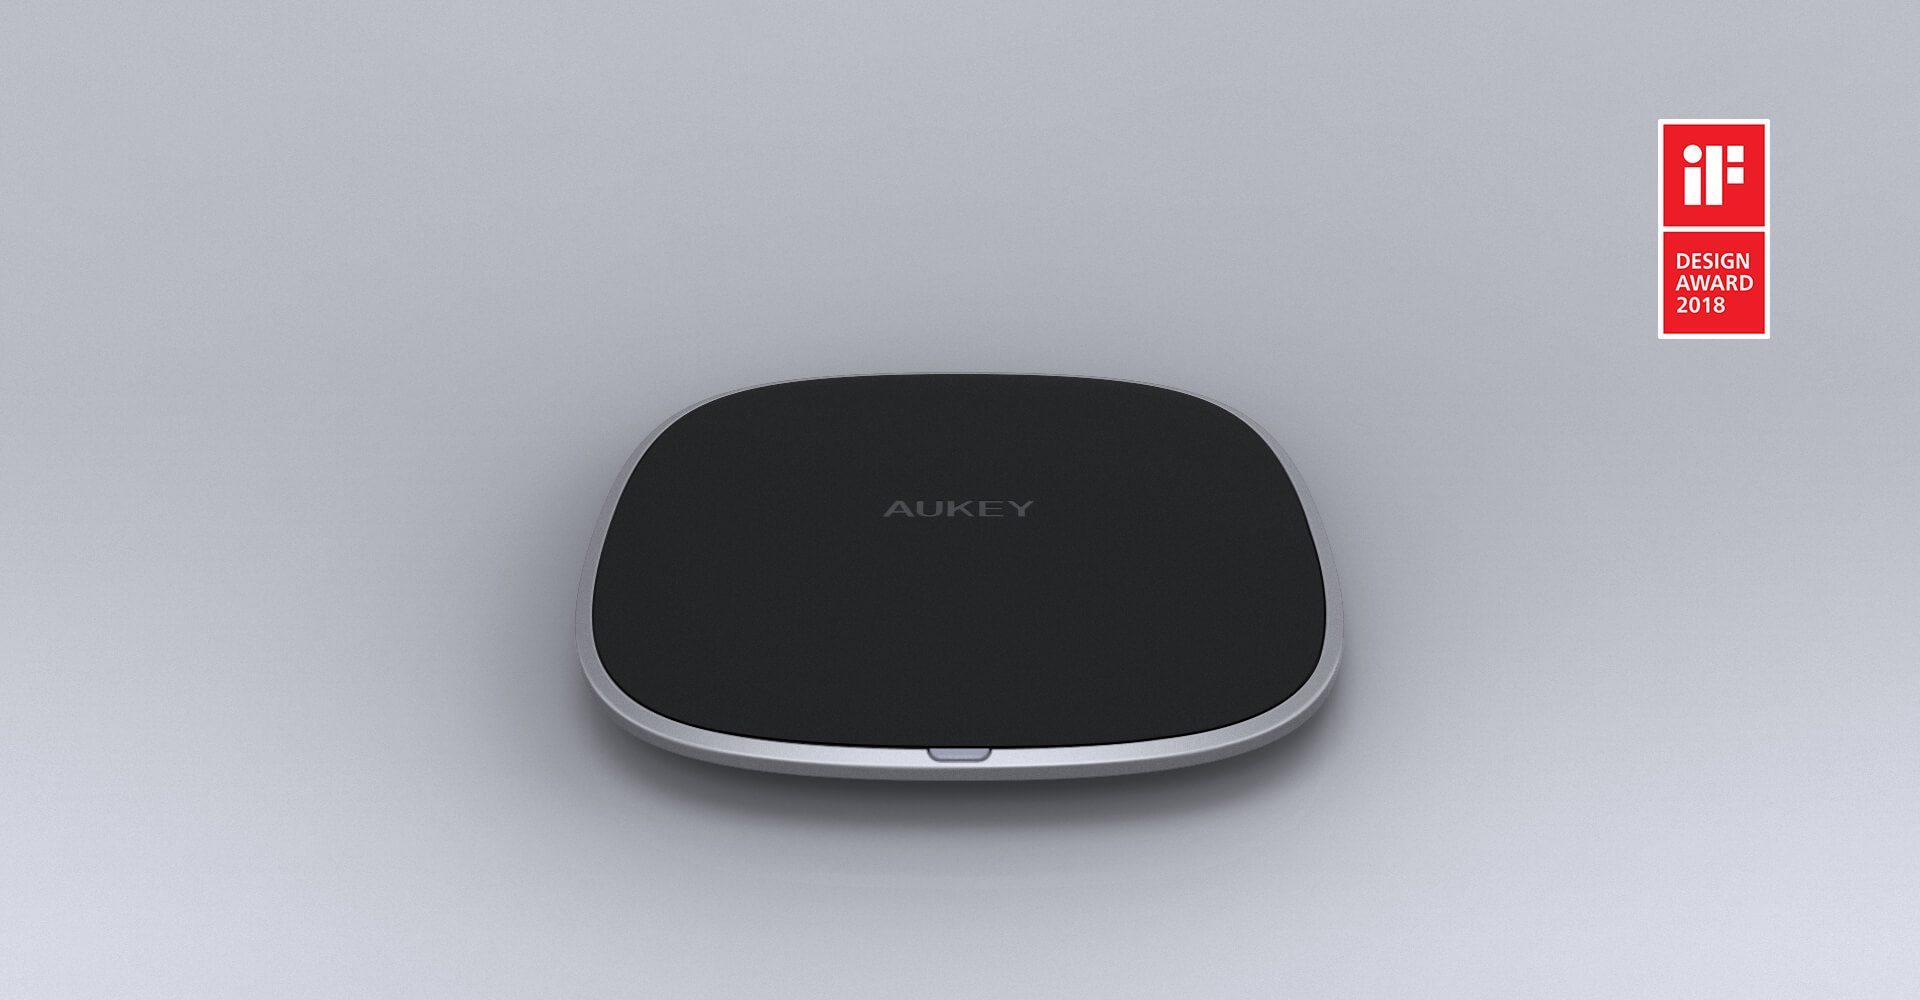 AUKEY Receives iF DESIGN AWARD 2018